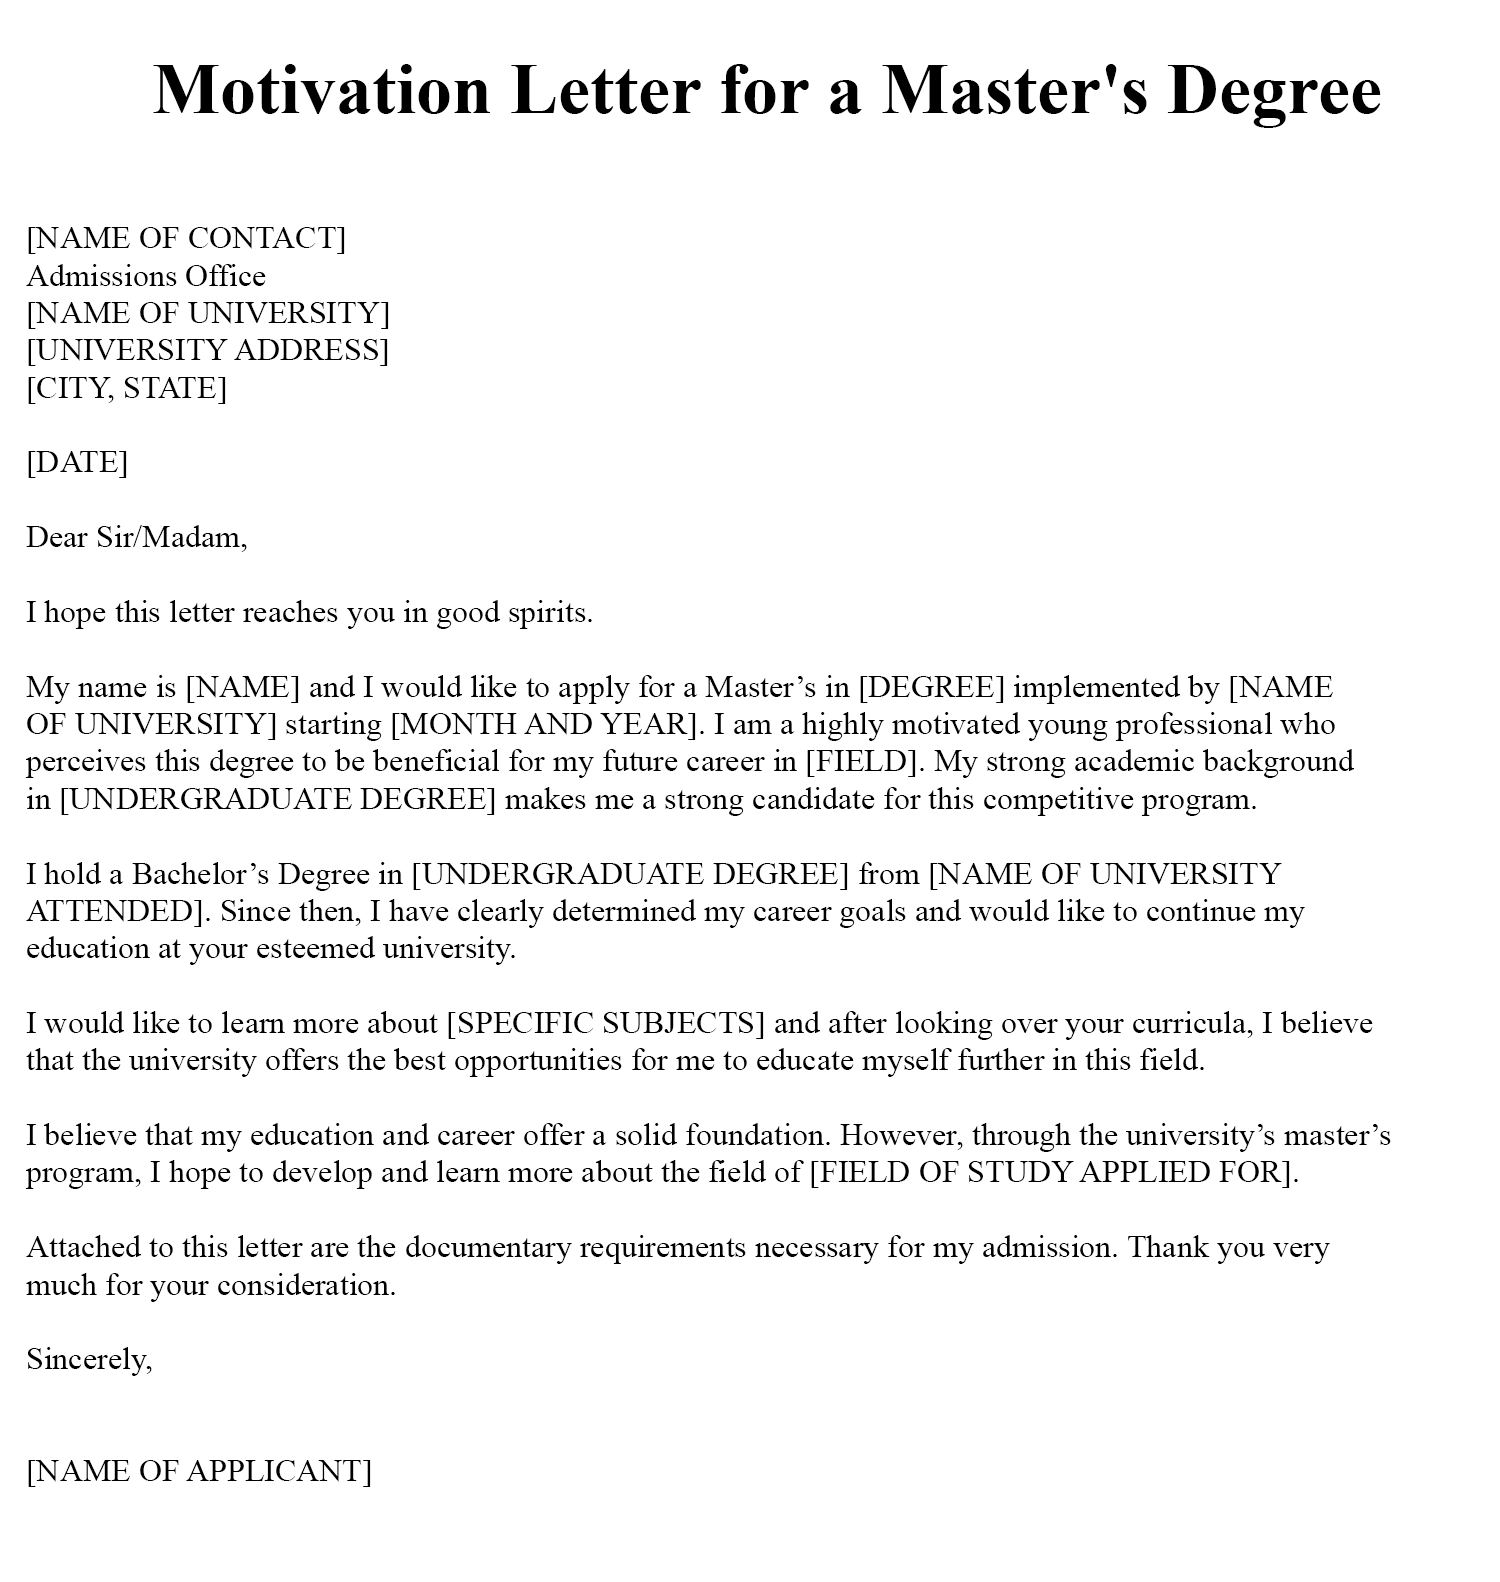 Motivation Letter For Master Degree Sample PDF